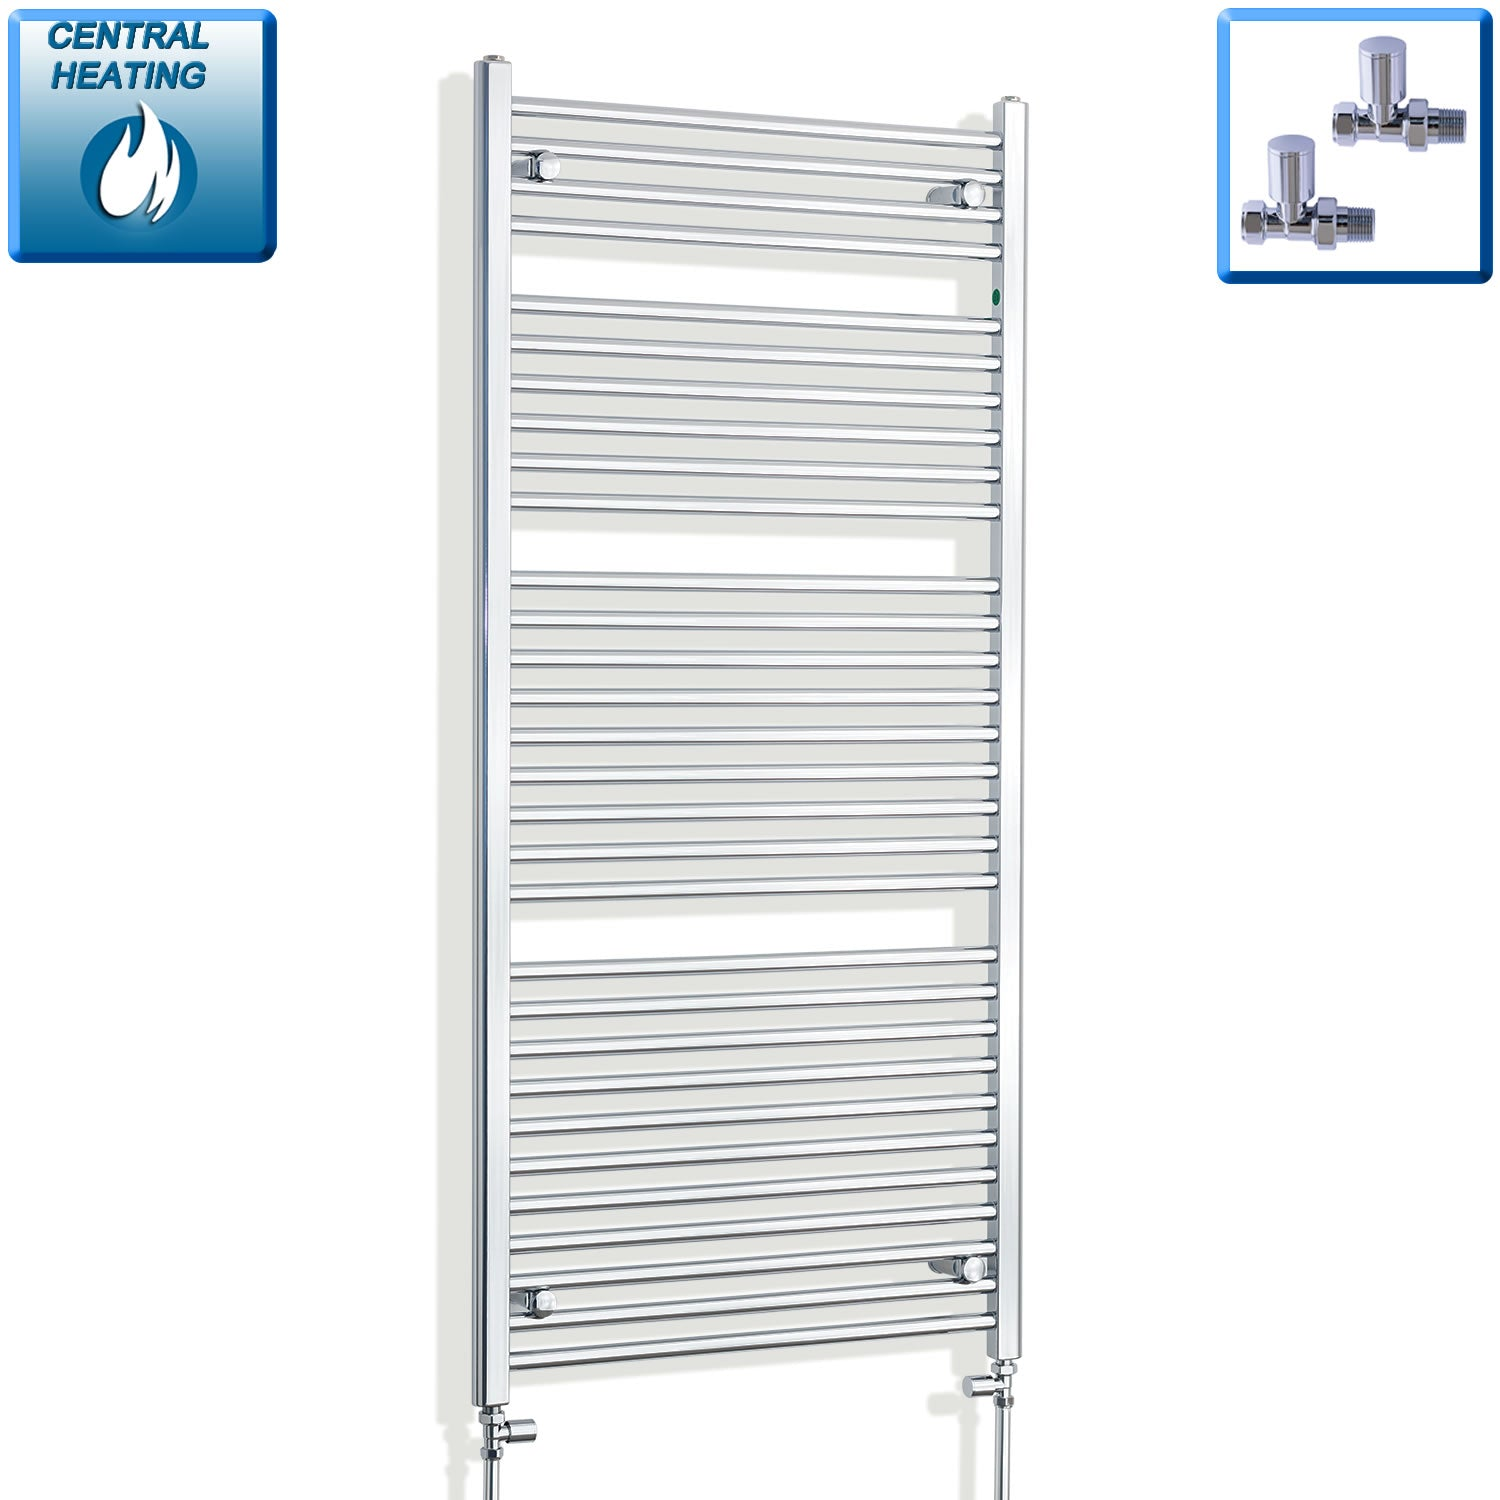 750mm Wide 1500mm High Curved Chrome Heated Towel Rail Radiator HTR,With Straight Valve